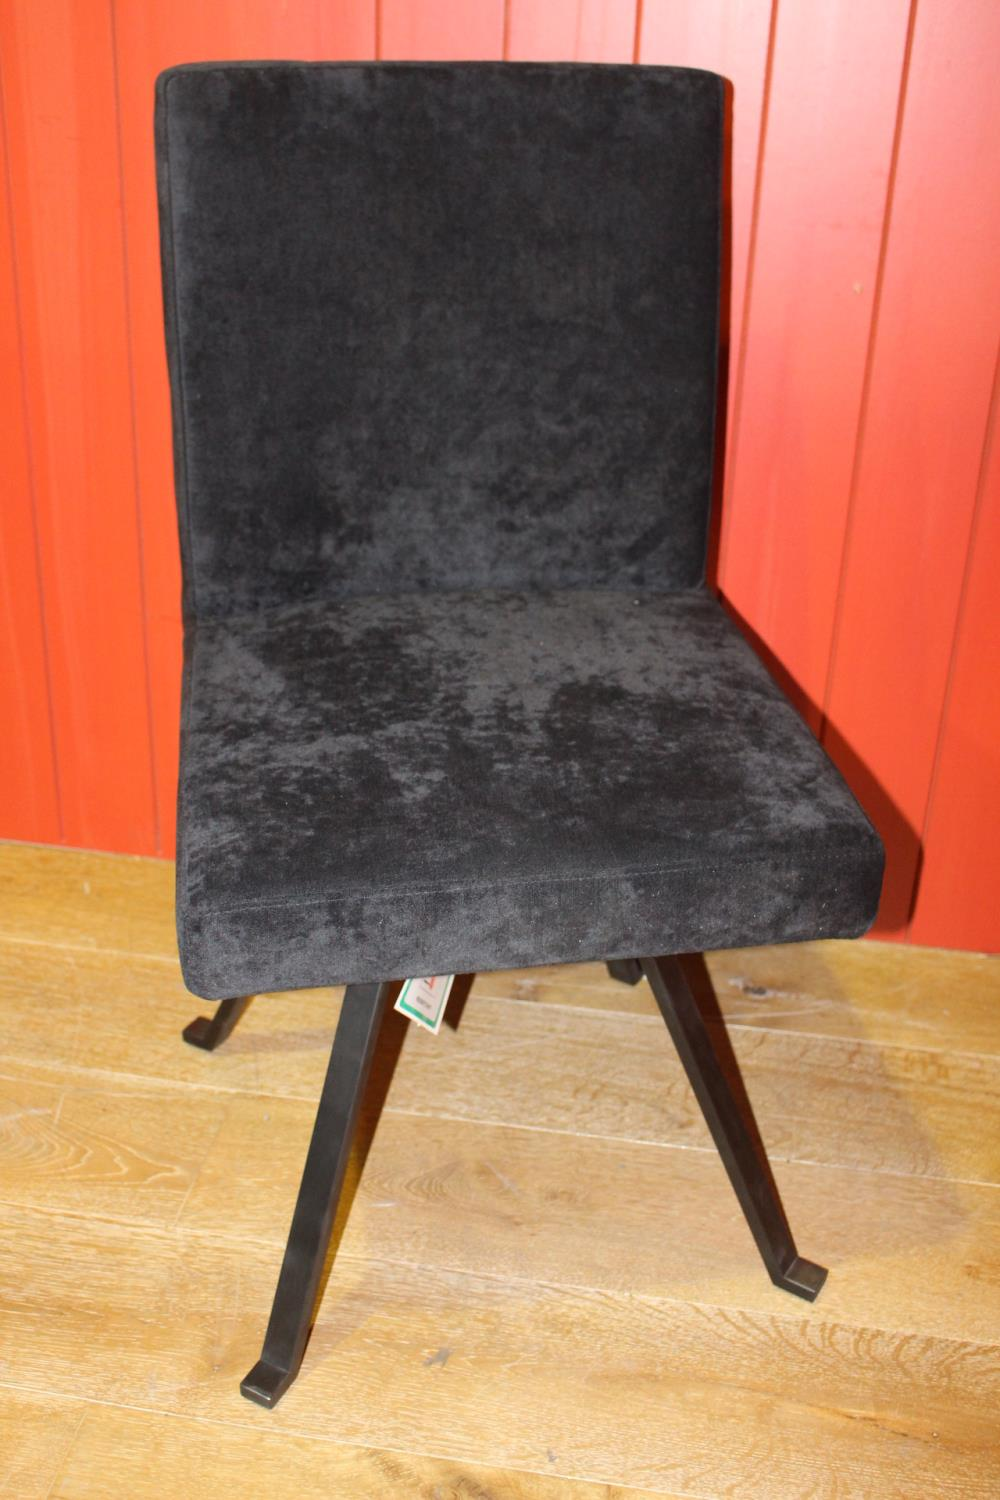 Black velvet upholstered swivel chair